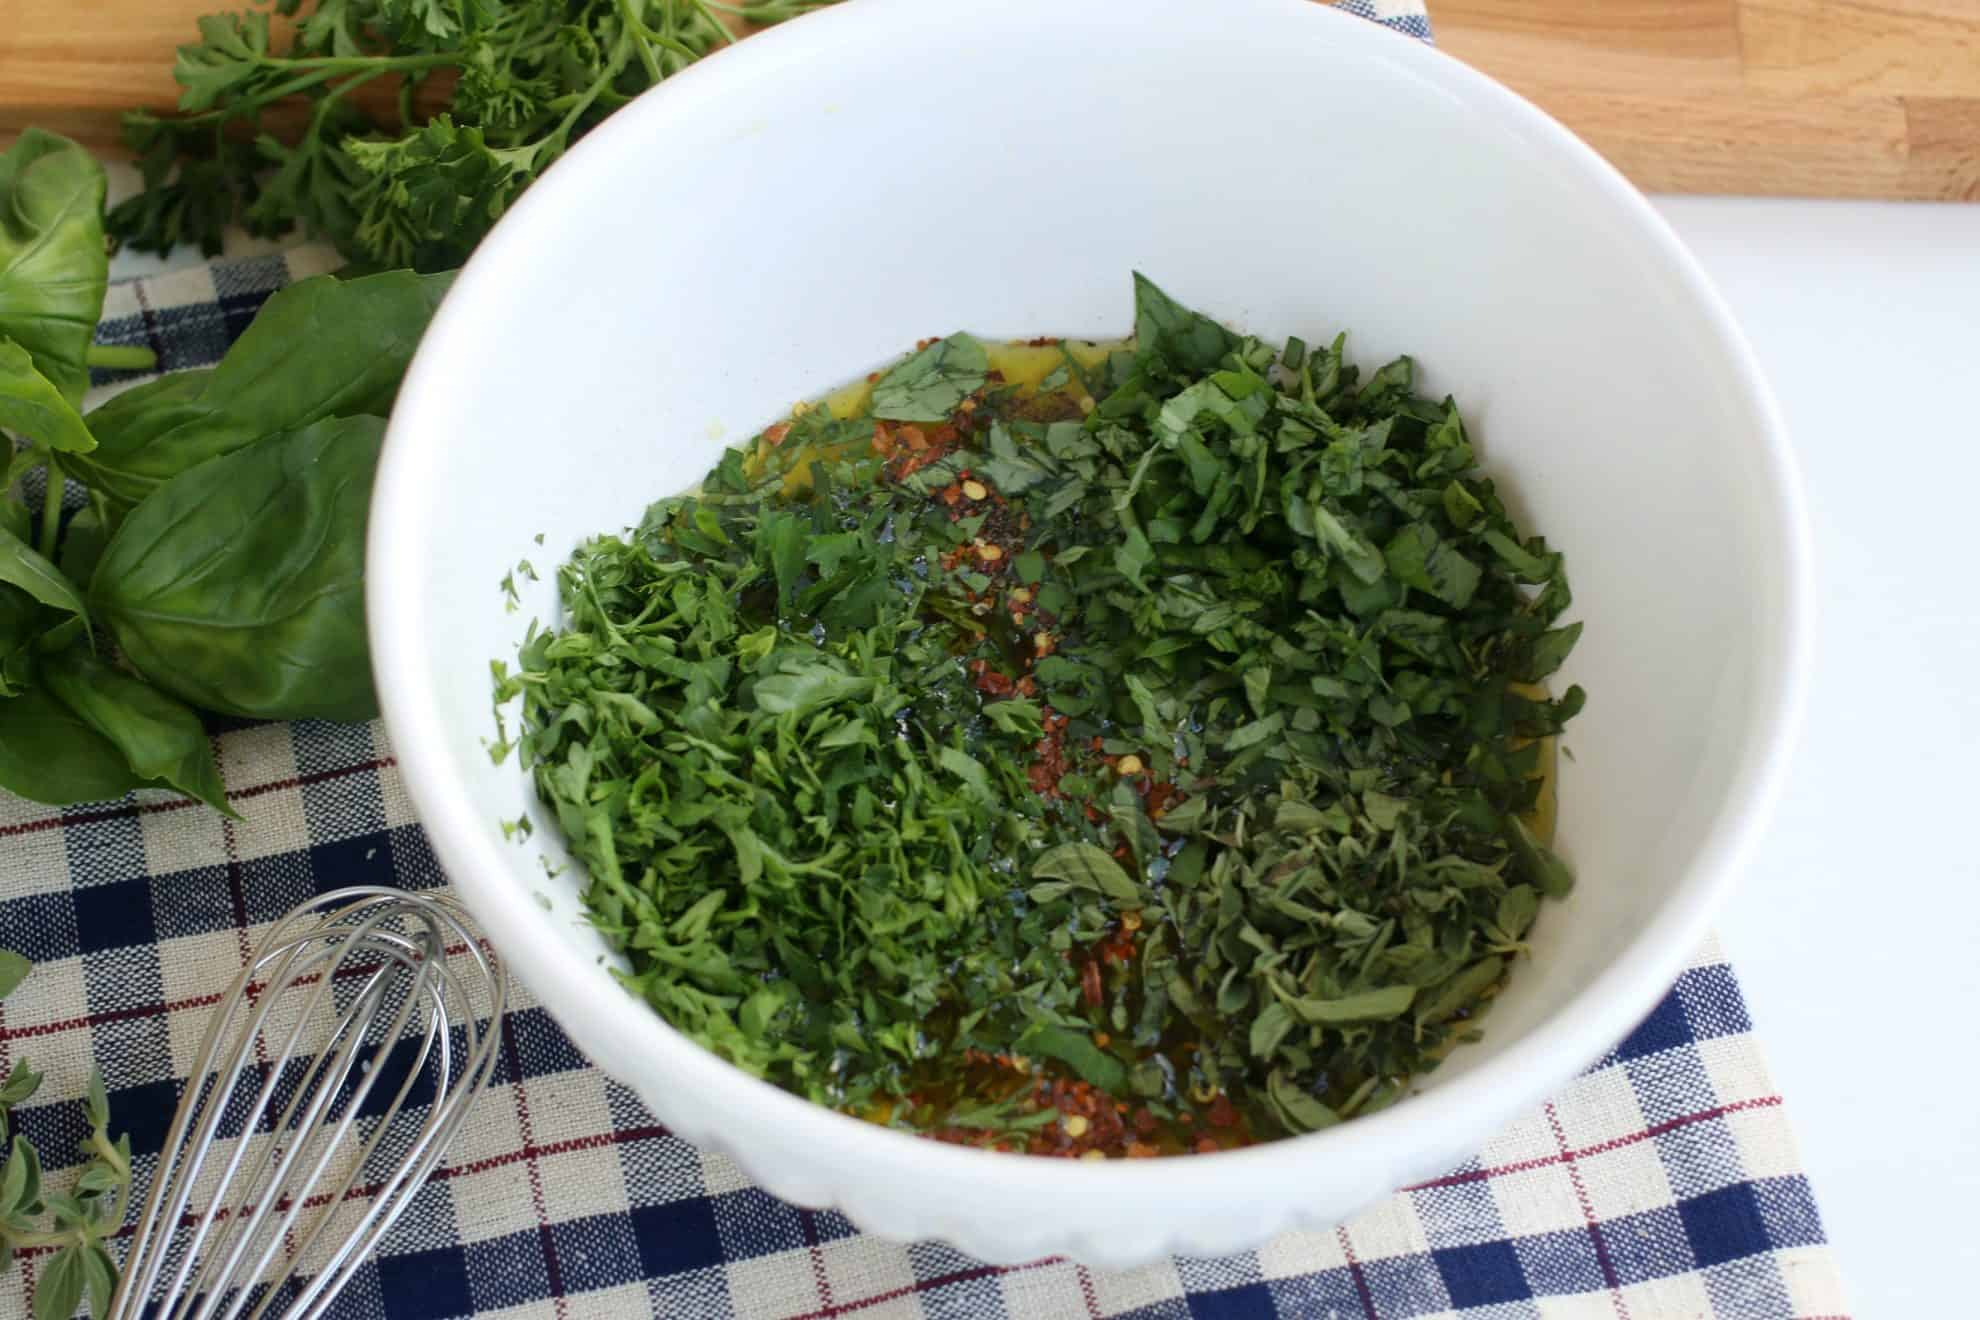 Add the cut up herbs to the bowl with all the rest of the ingredients for a simple marinade.